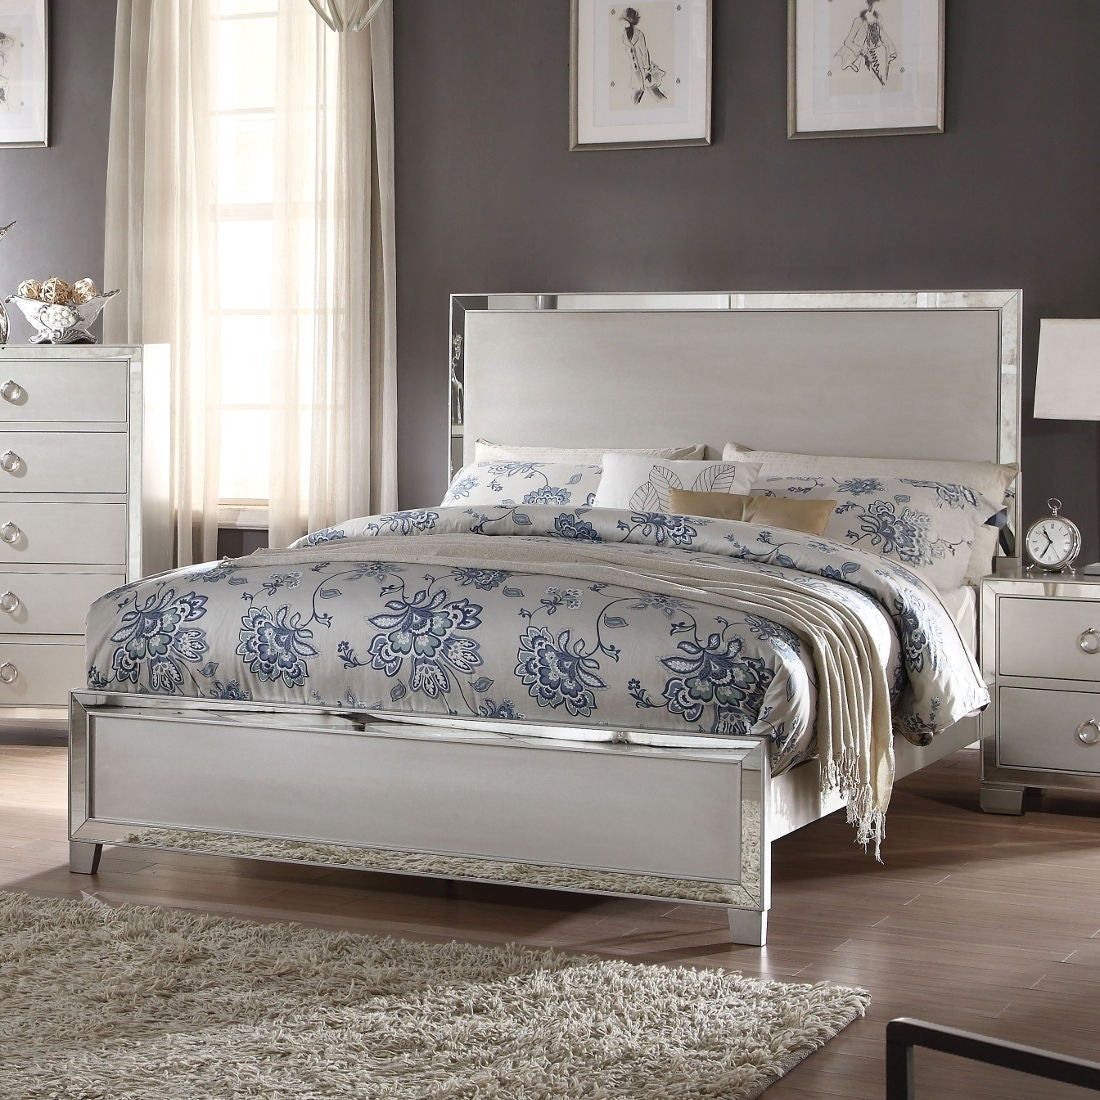 Ventian Platinum Collection bed